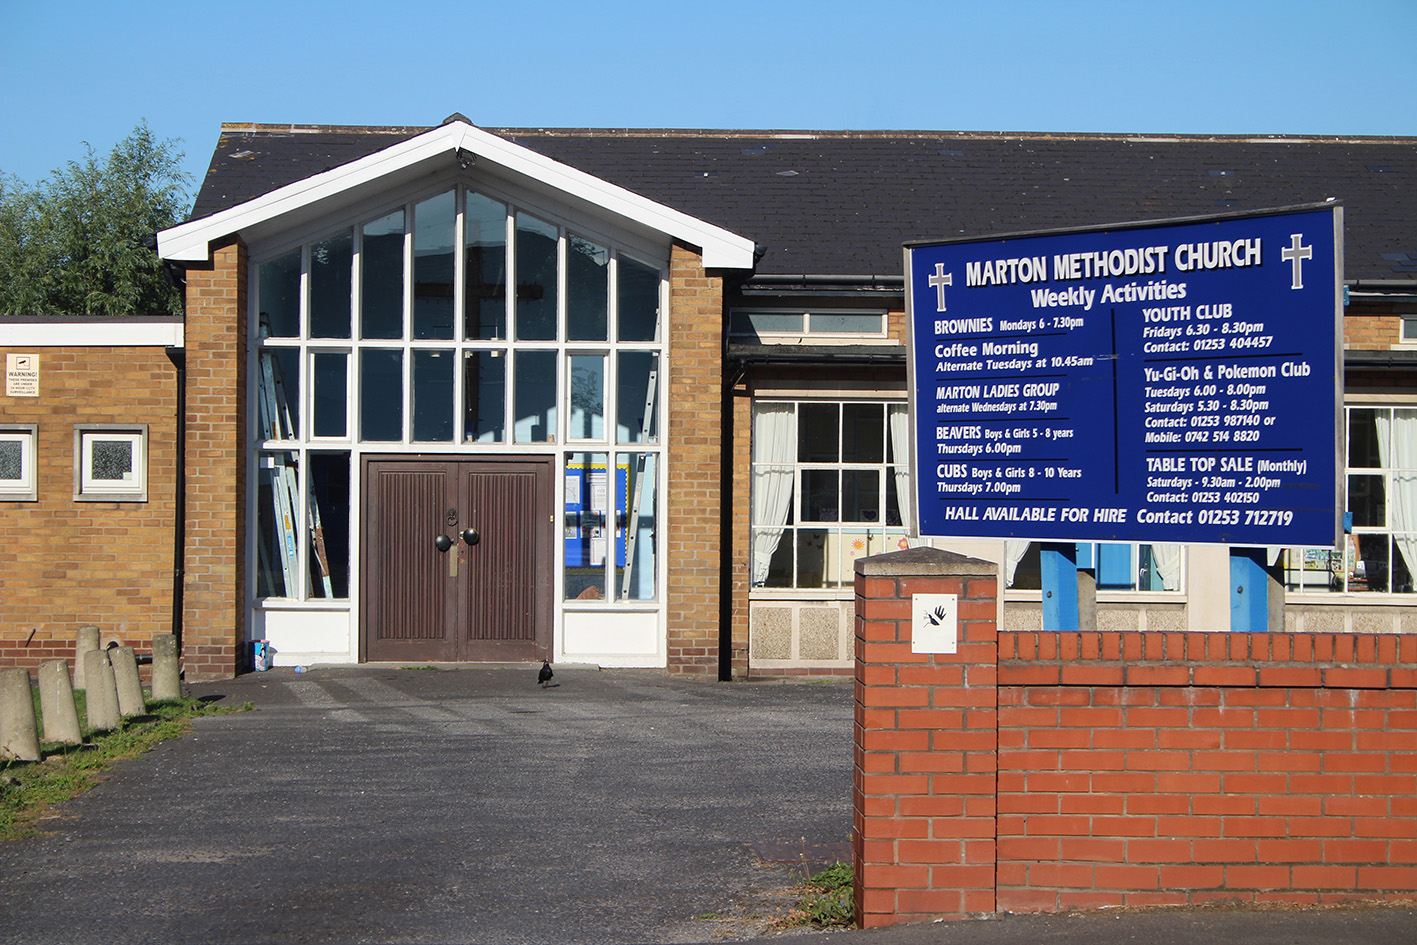 Photograph of Marton Methodist Church